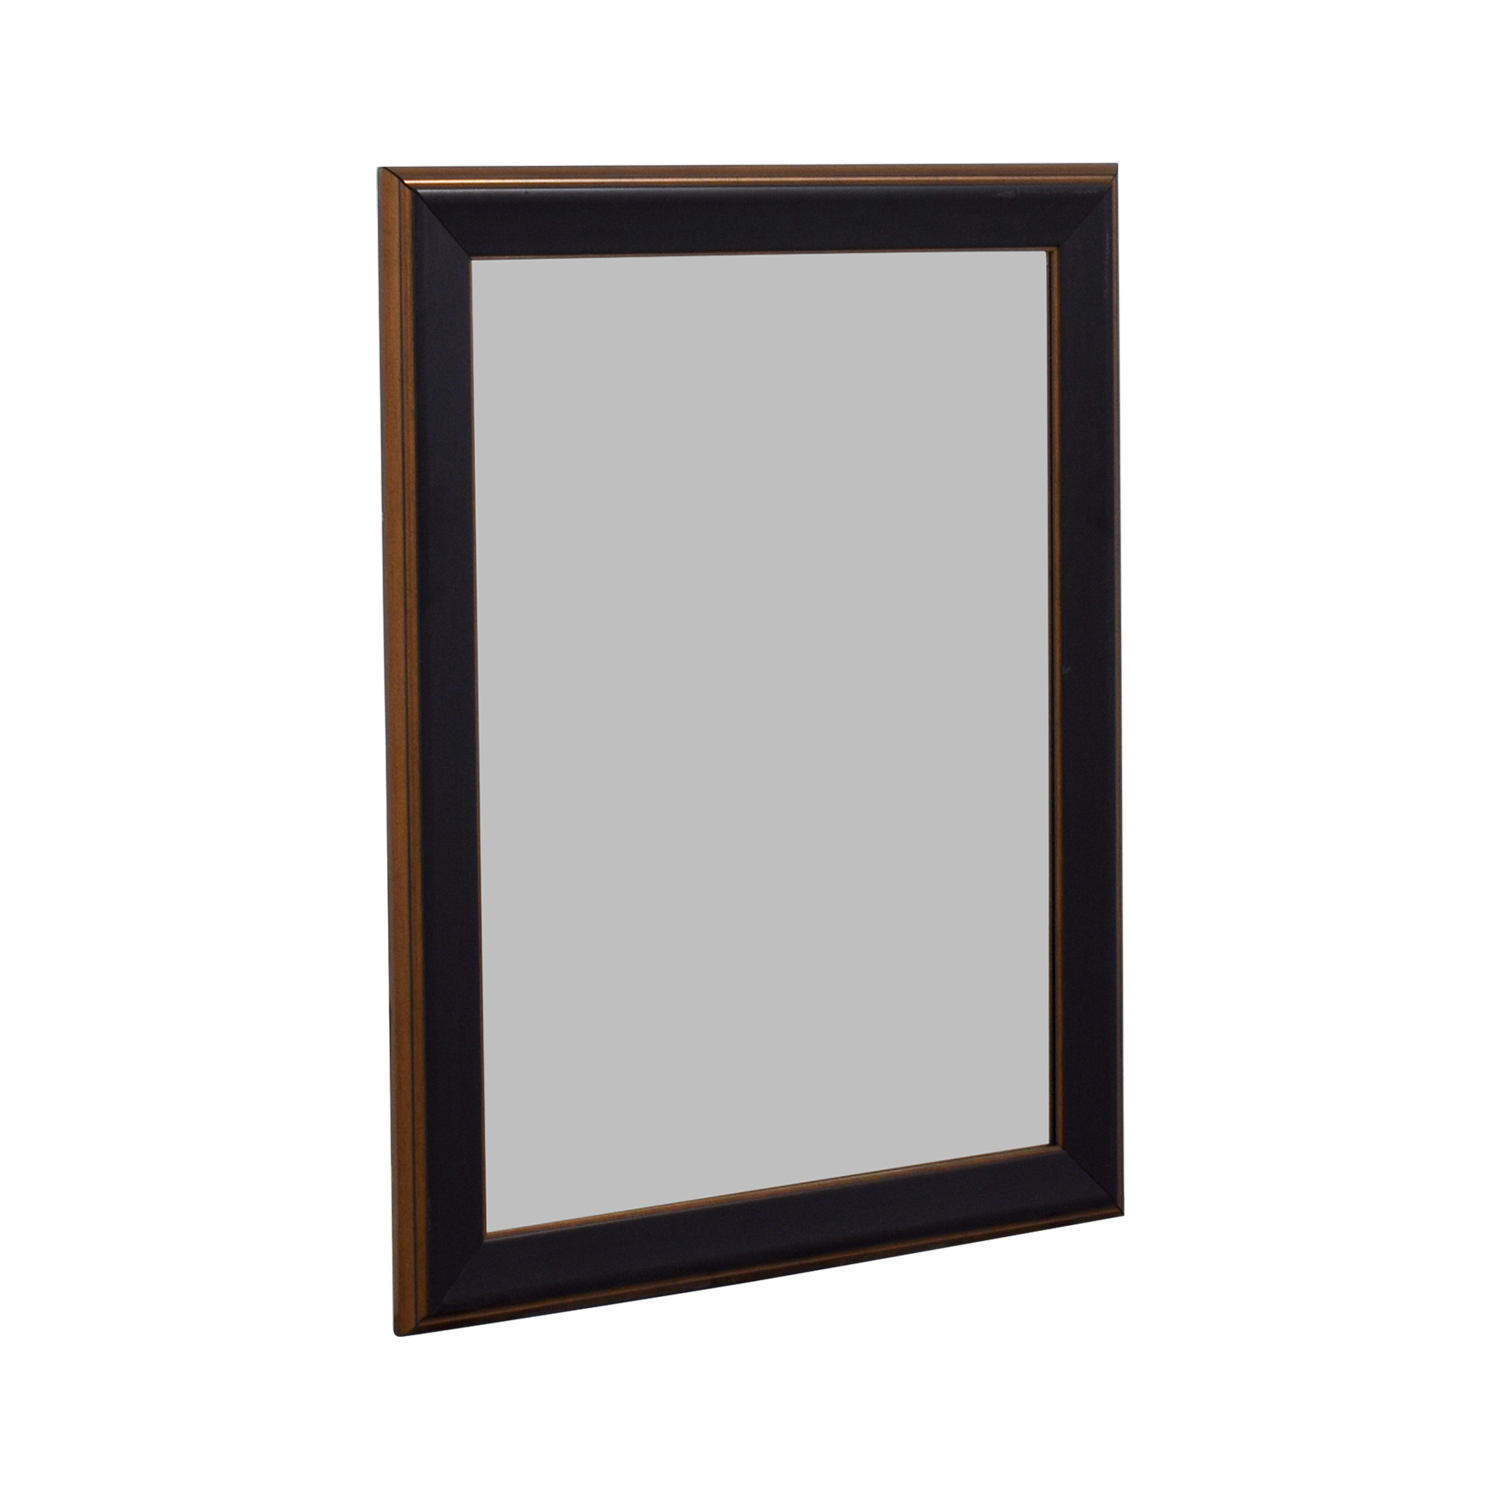 Wood Framed Mirror Decor